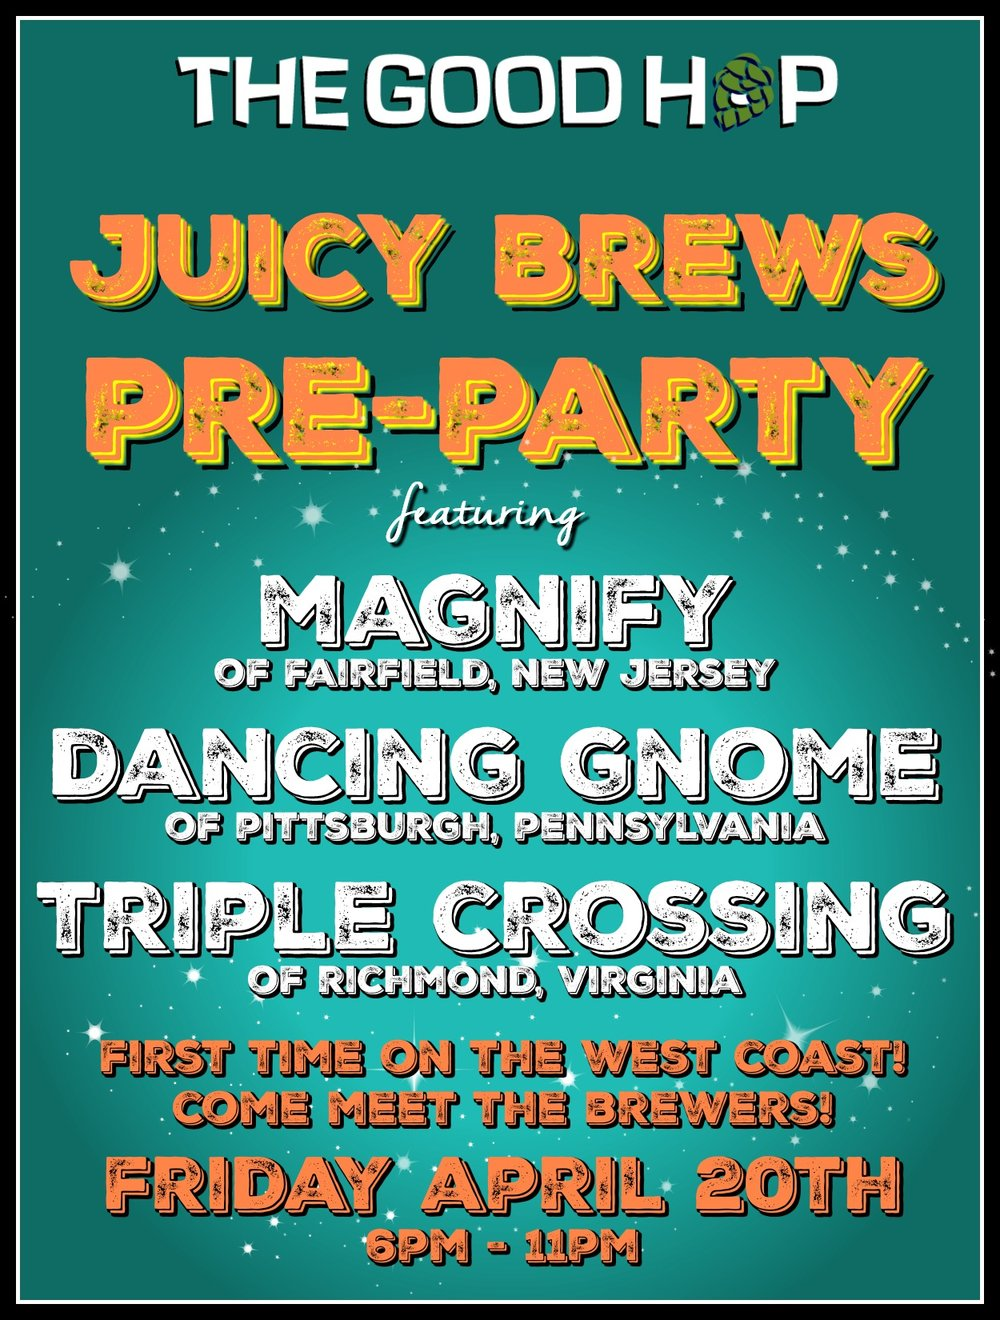 Juicy Brews Pre-Party.jpg